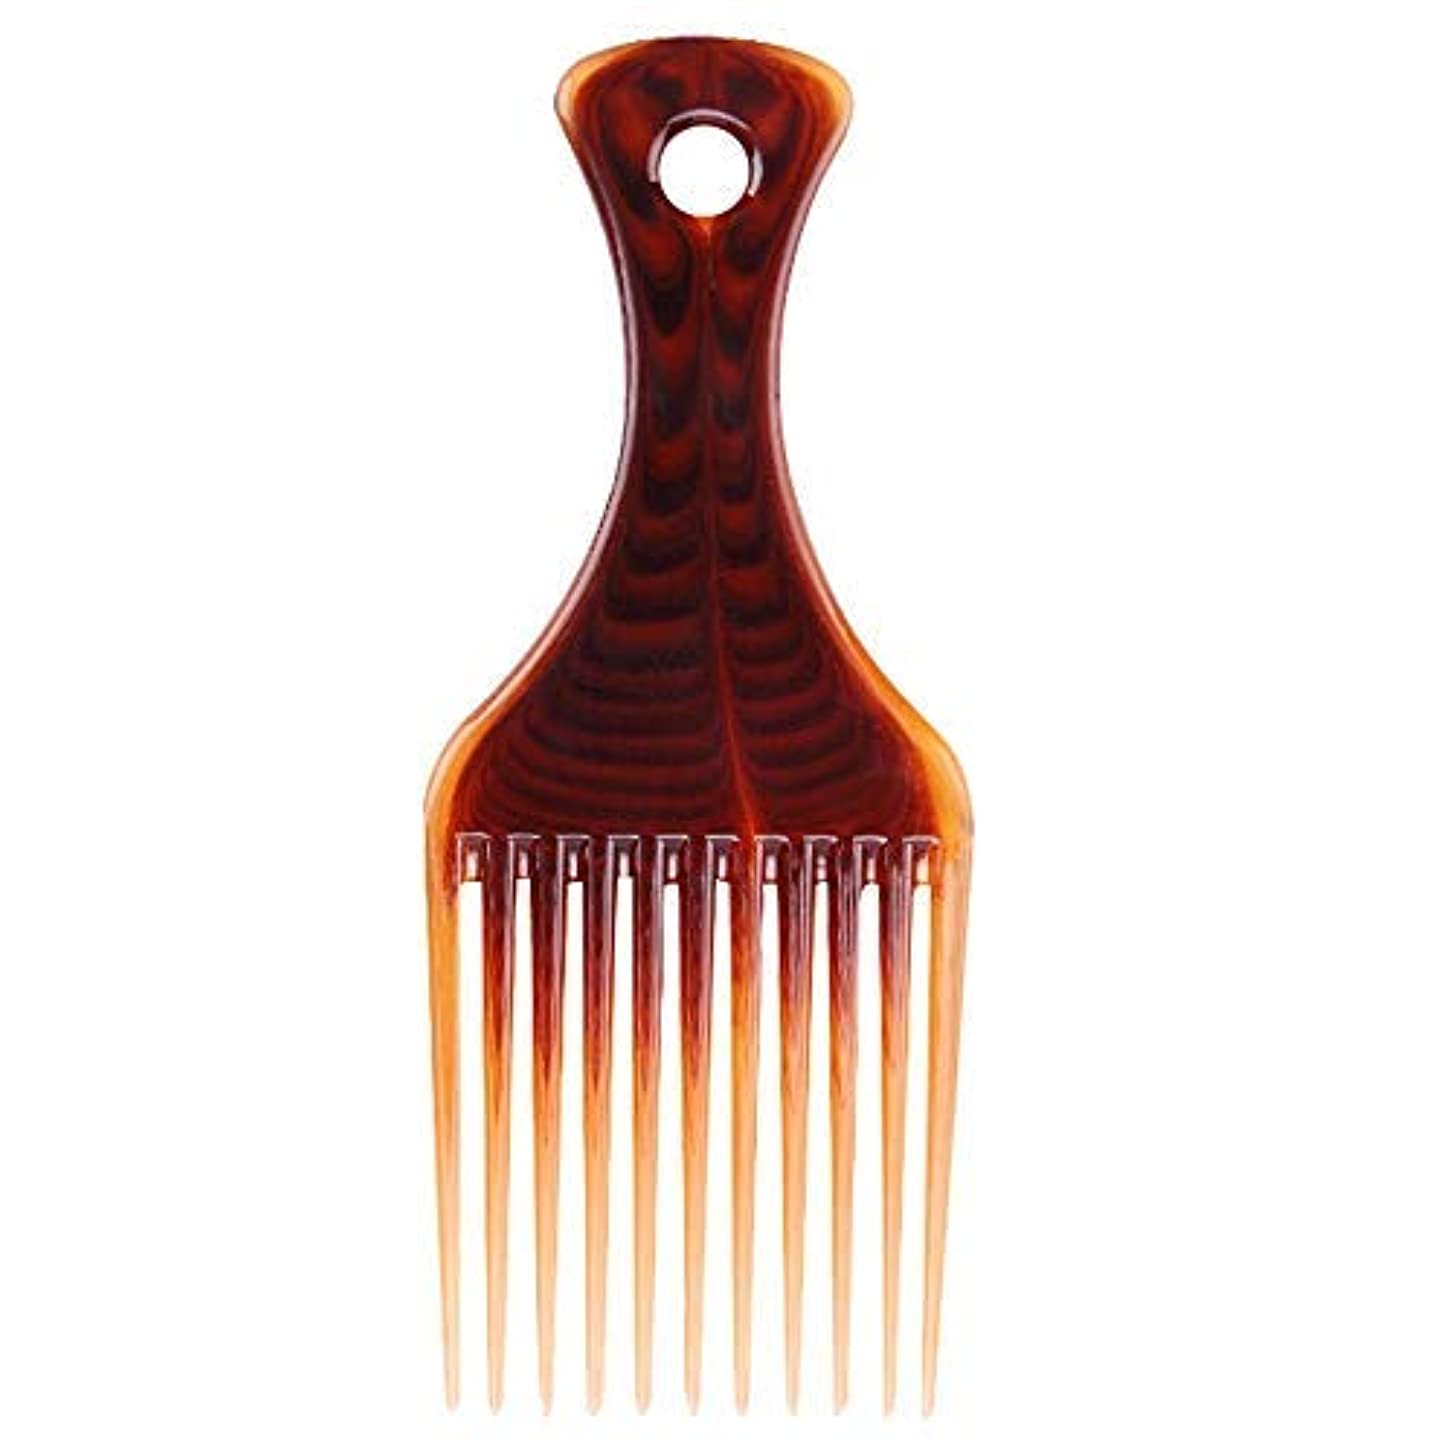 寛容なデンプシー交流するRosette Hair Amber Smooth Hair Pick Comb Afro Lift Detangle Hair Comb Hair Styling Tools [並行輸入品]